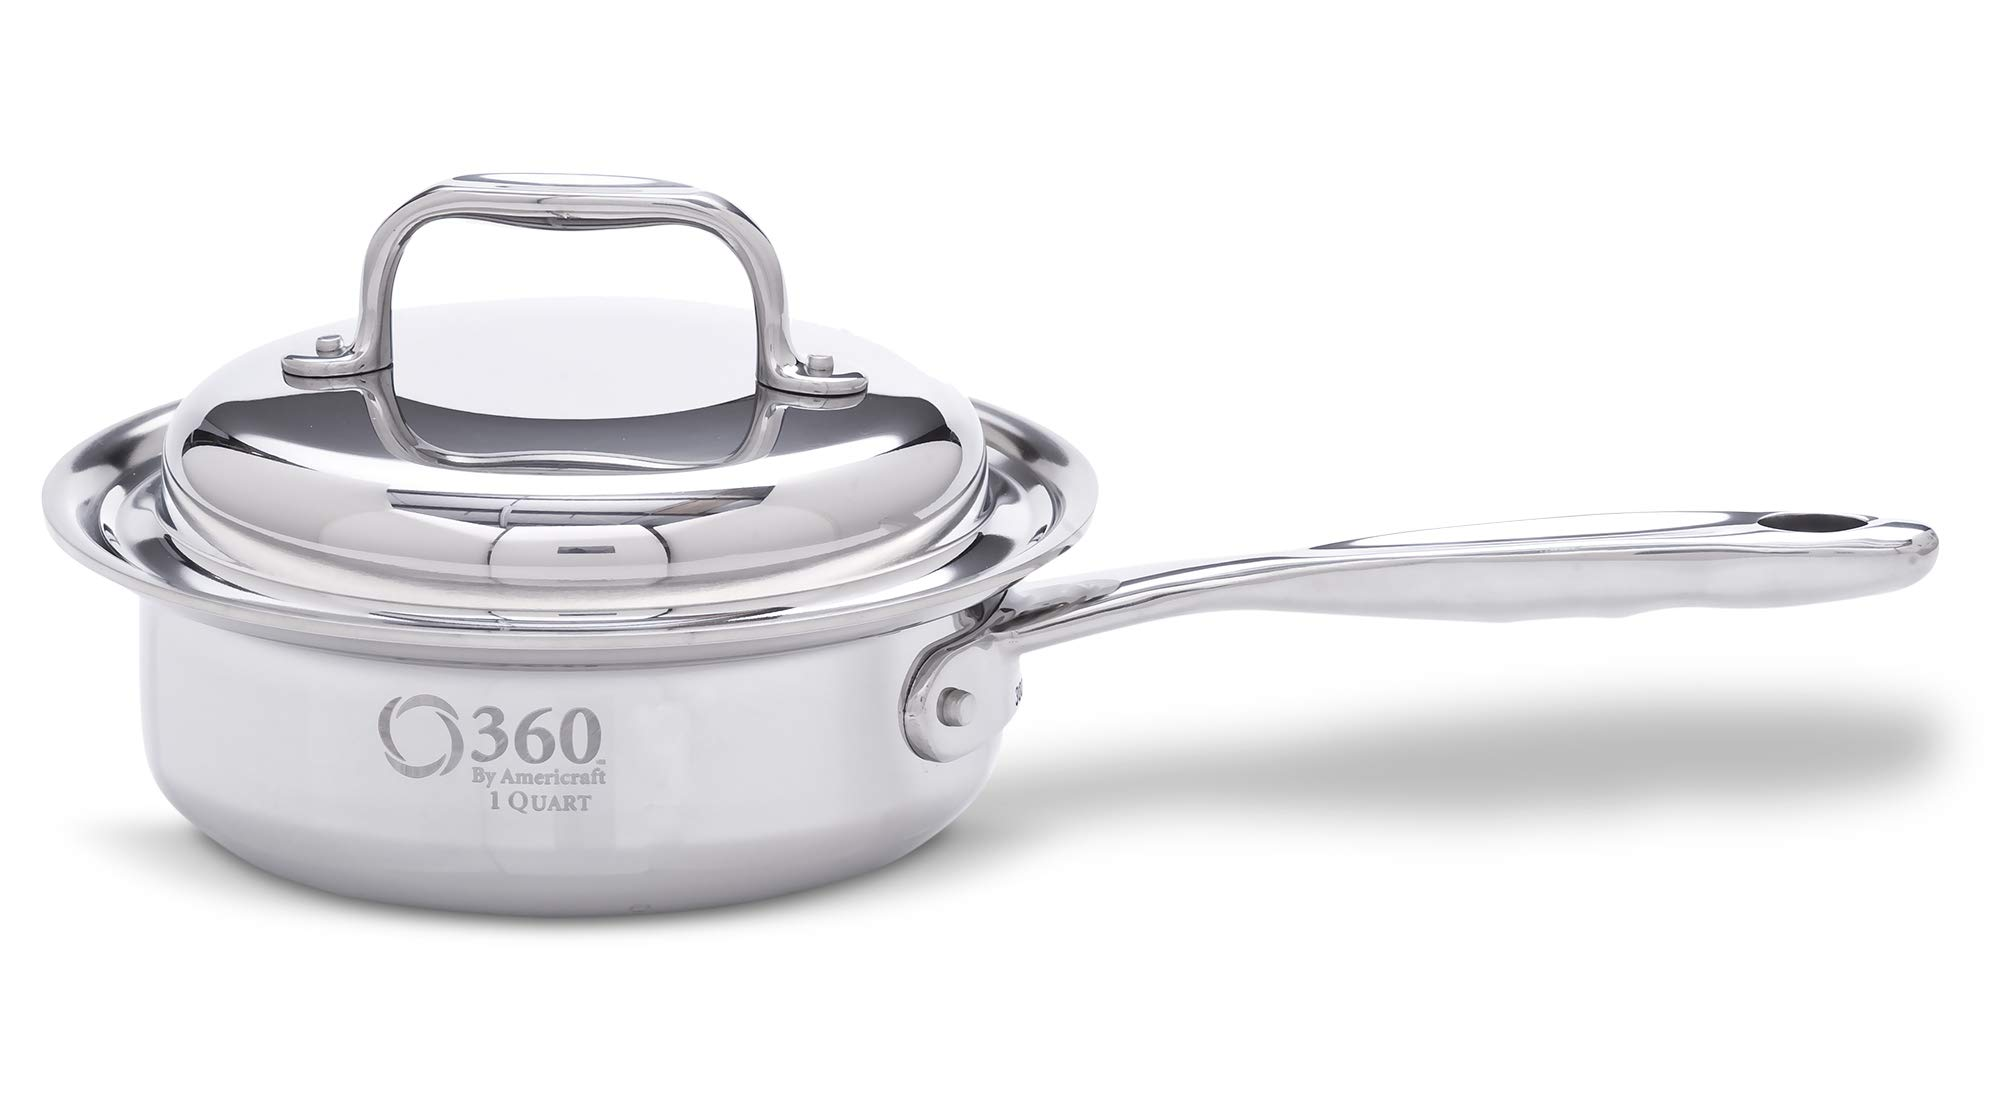 360 Cookware Stainless Steel Cookware, American Made, 1 Quart Pot with Cover for Gas, Electric, Induction Stoves. Waterless Cookware Cooking Capable, Lasts a Lifetime, Professional Grade